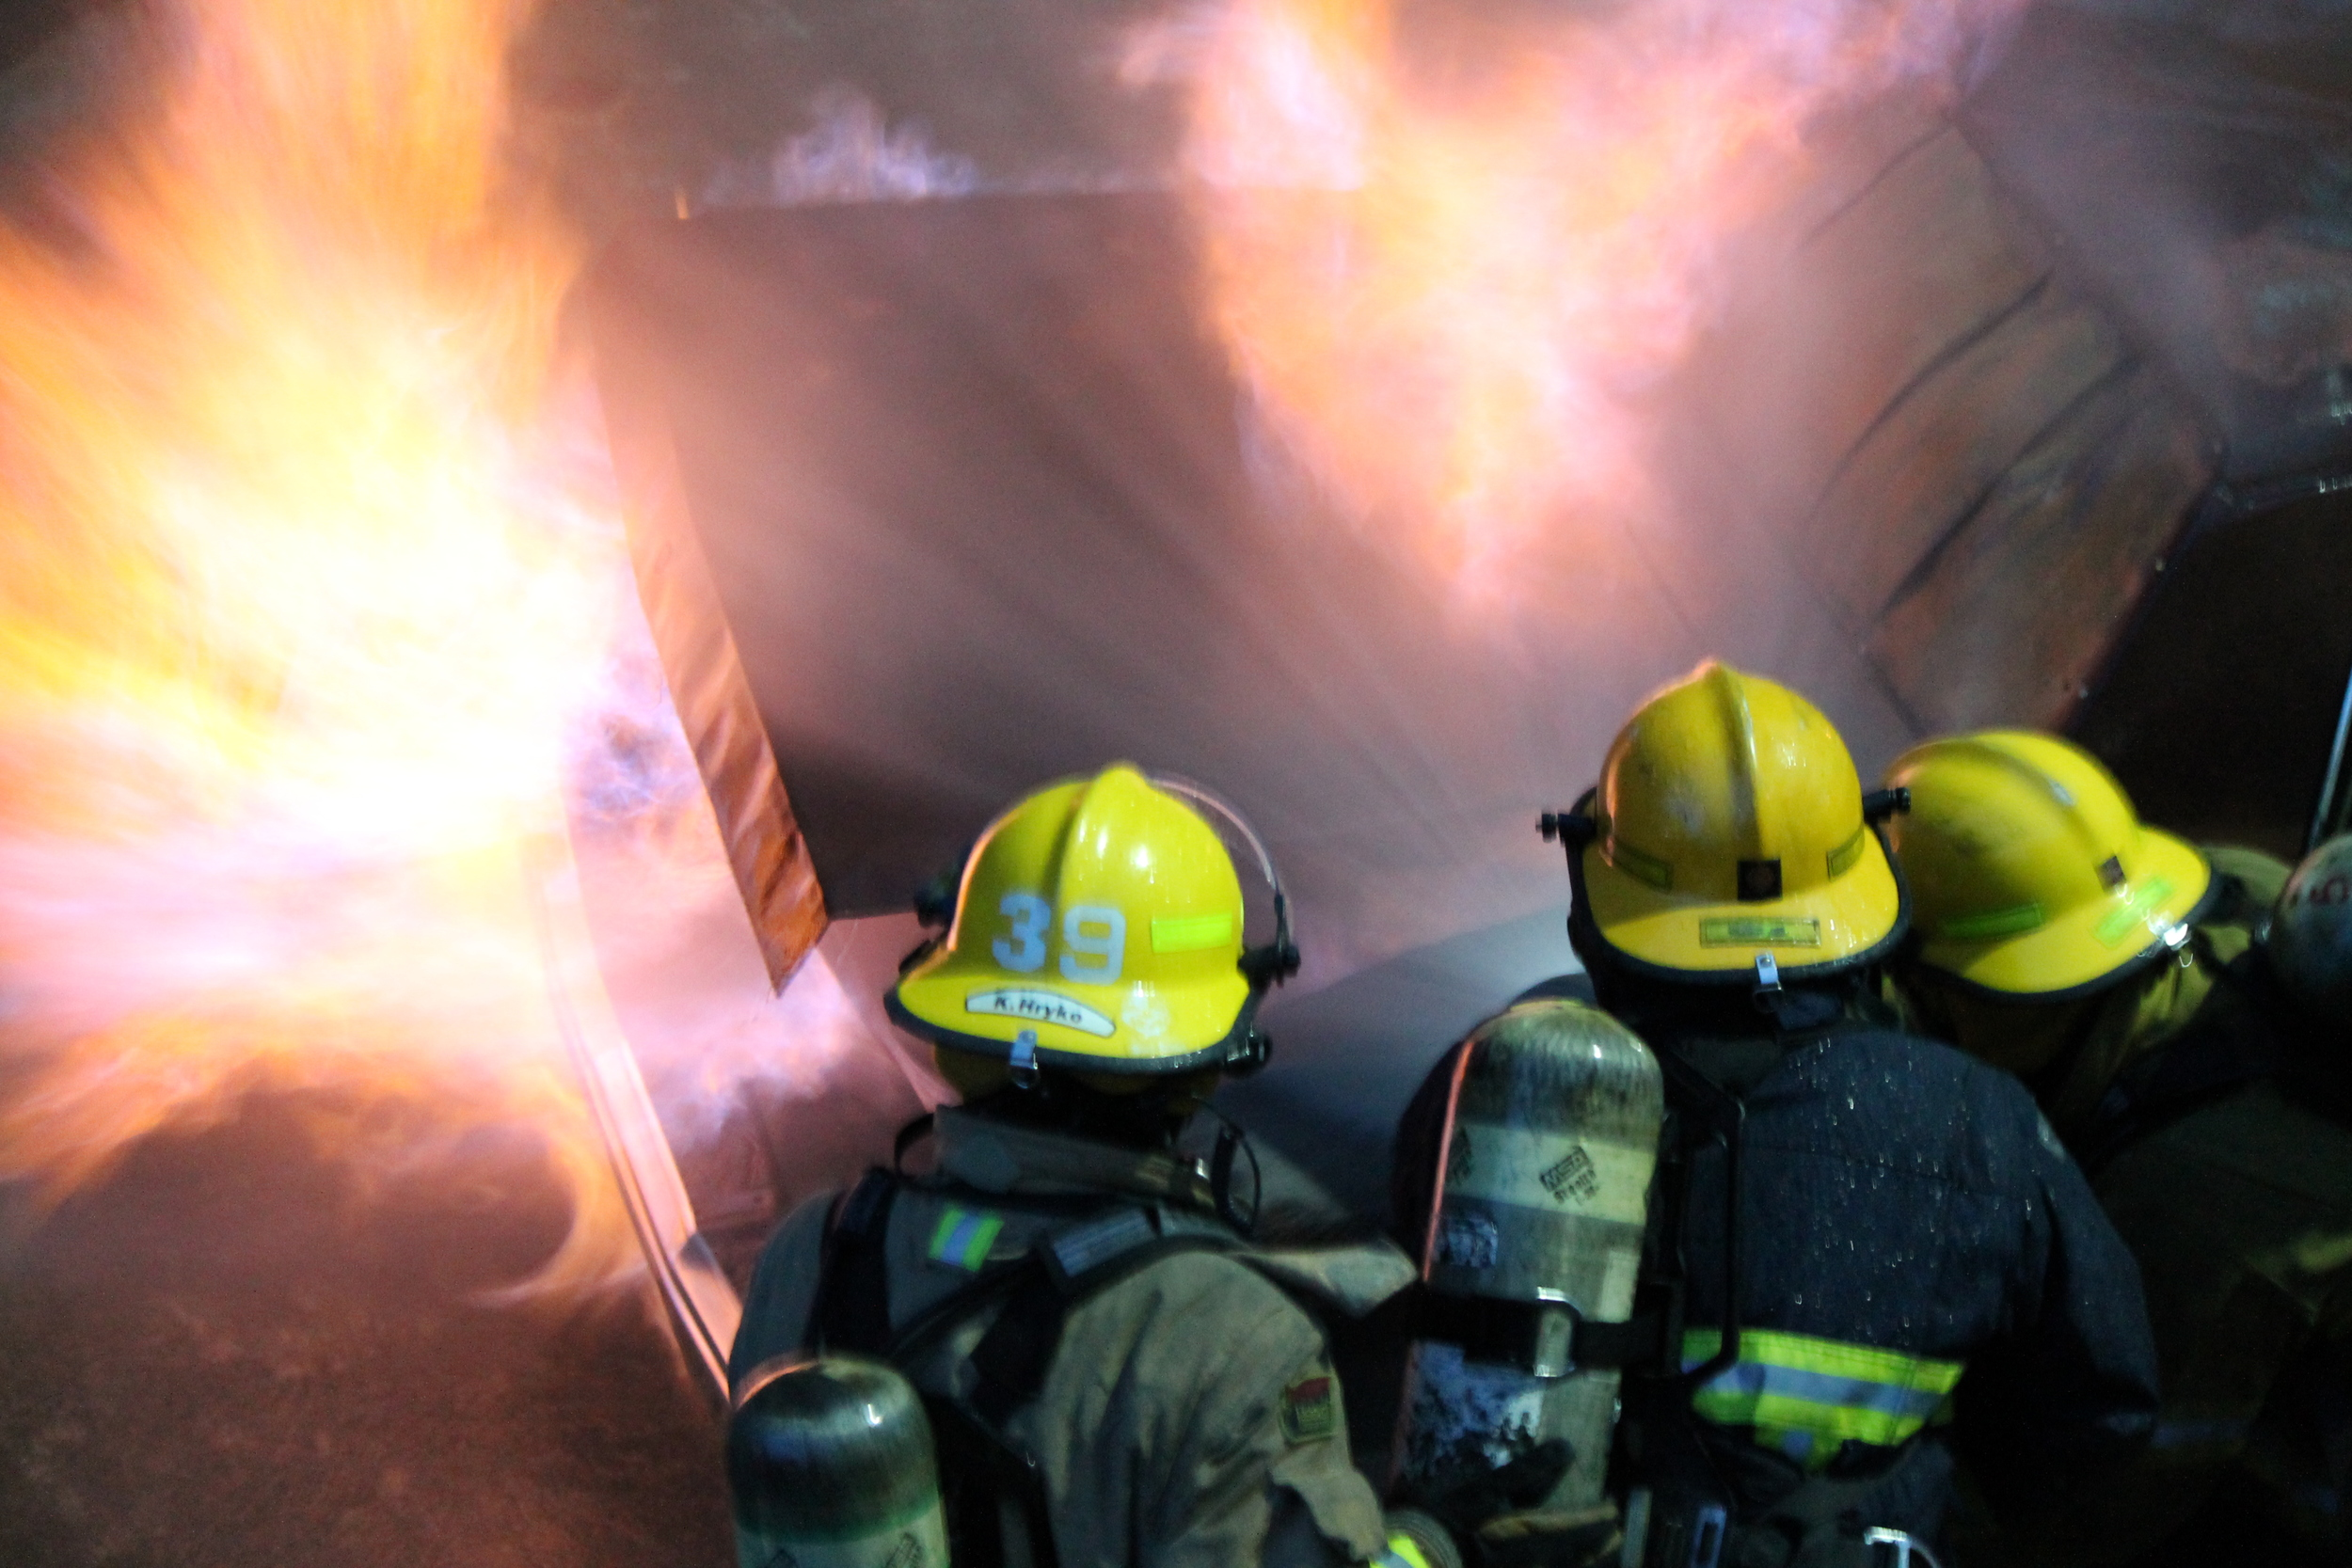 Extinguishing a fire in the trunk of a vehicle